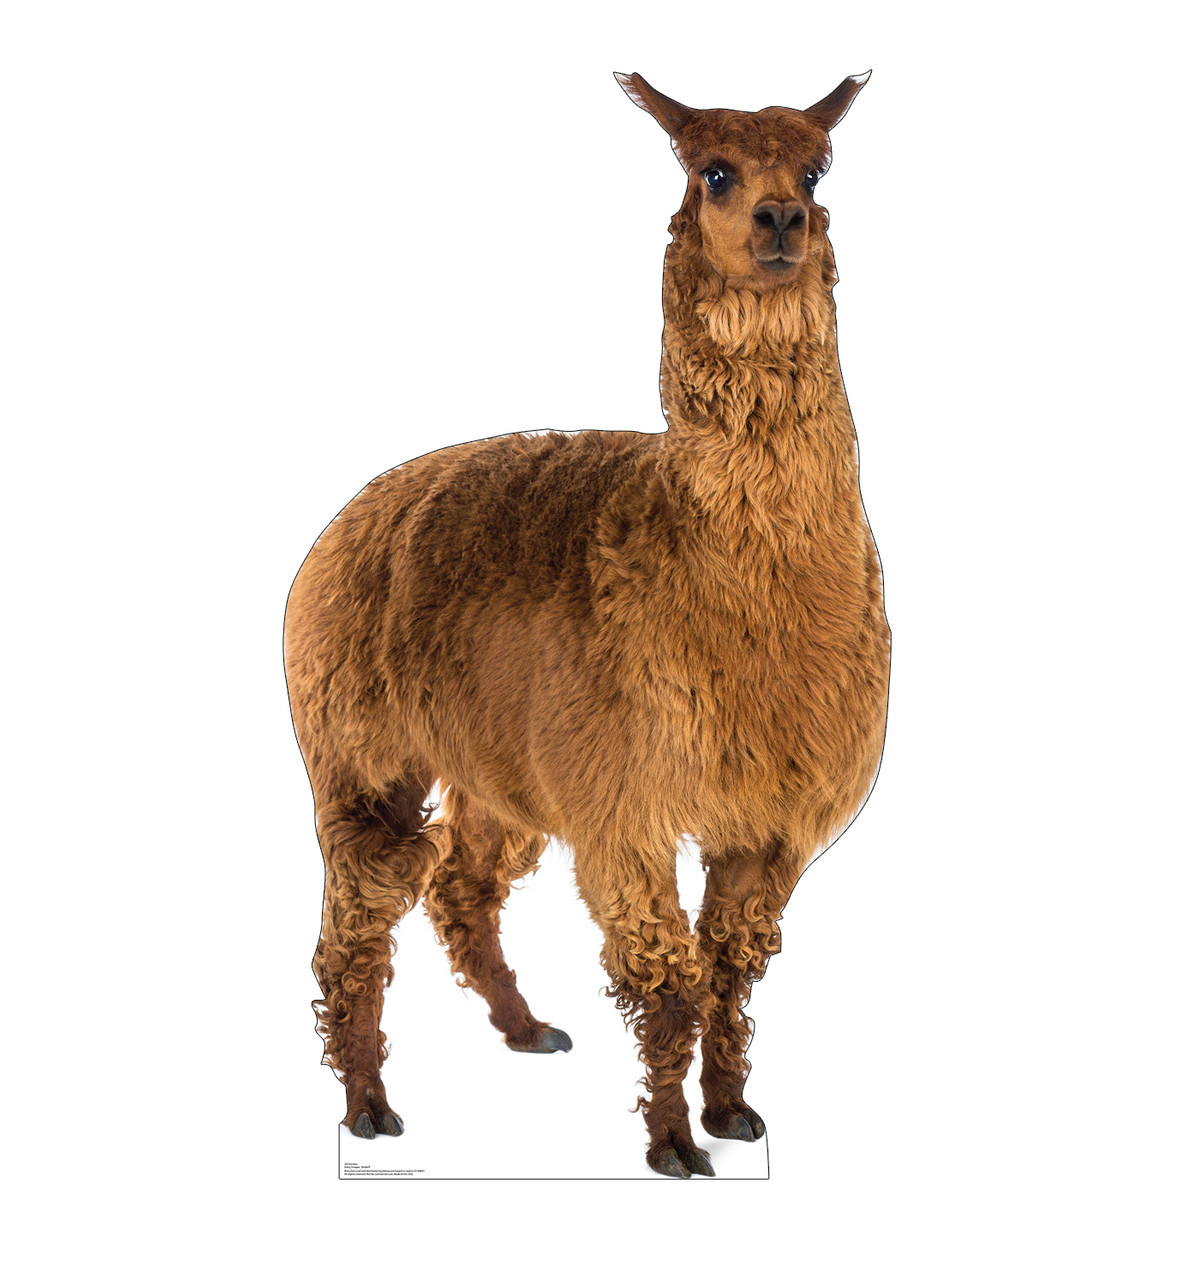 Life-size cardboard standee of a Llama Front View